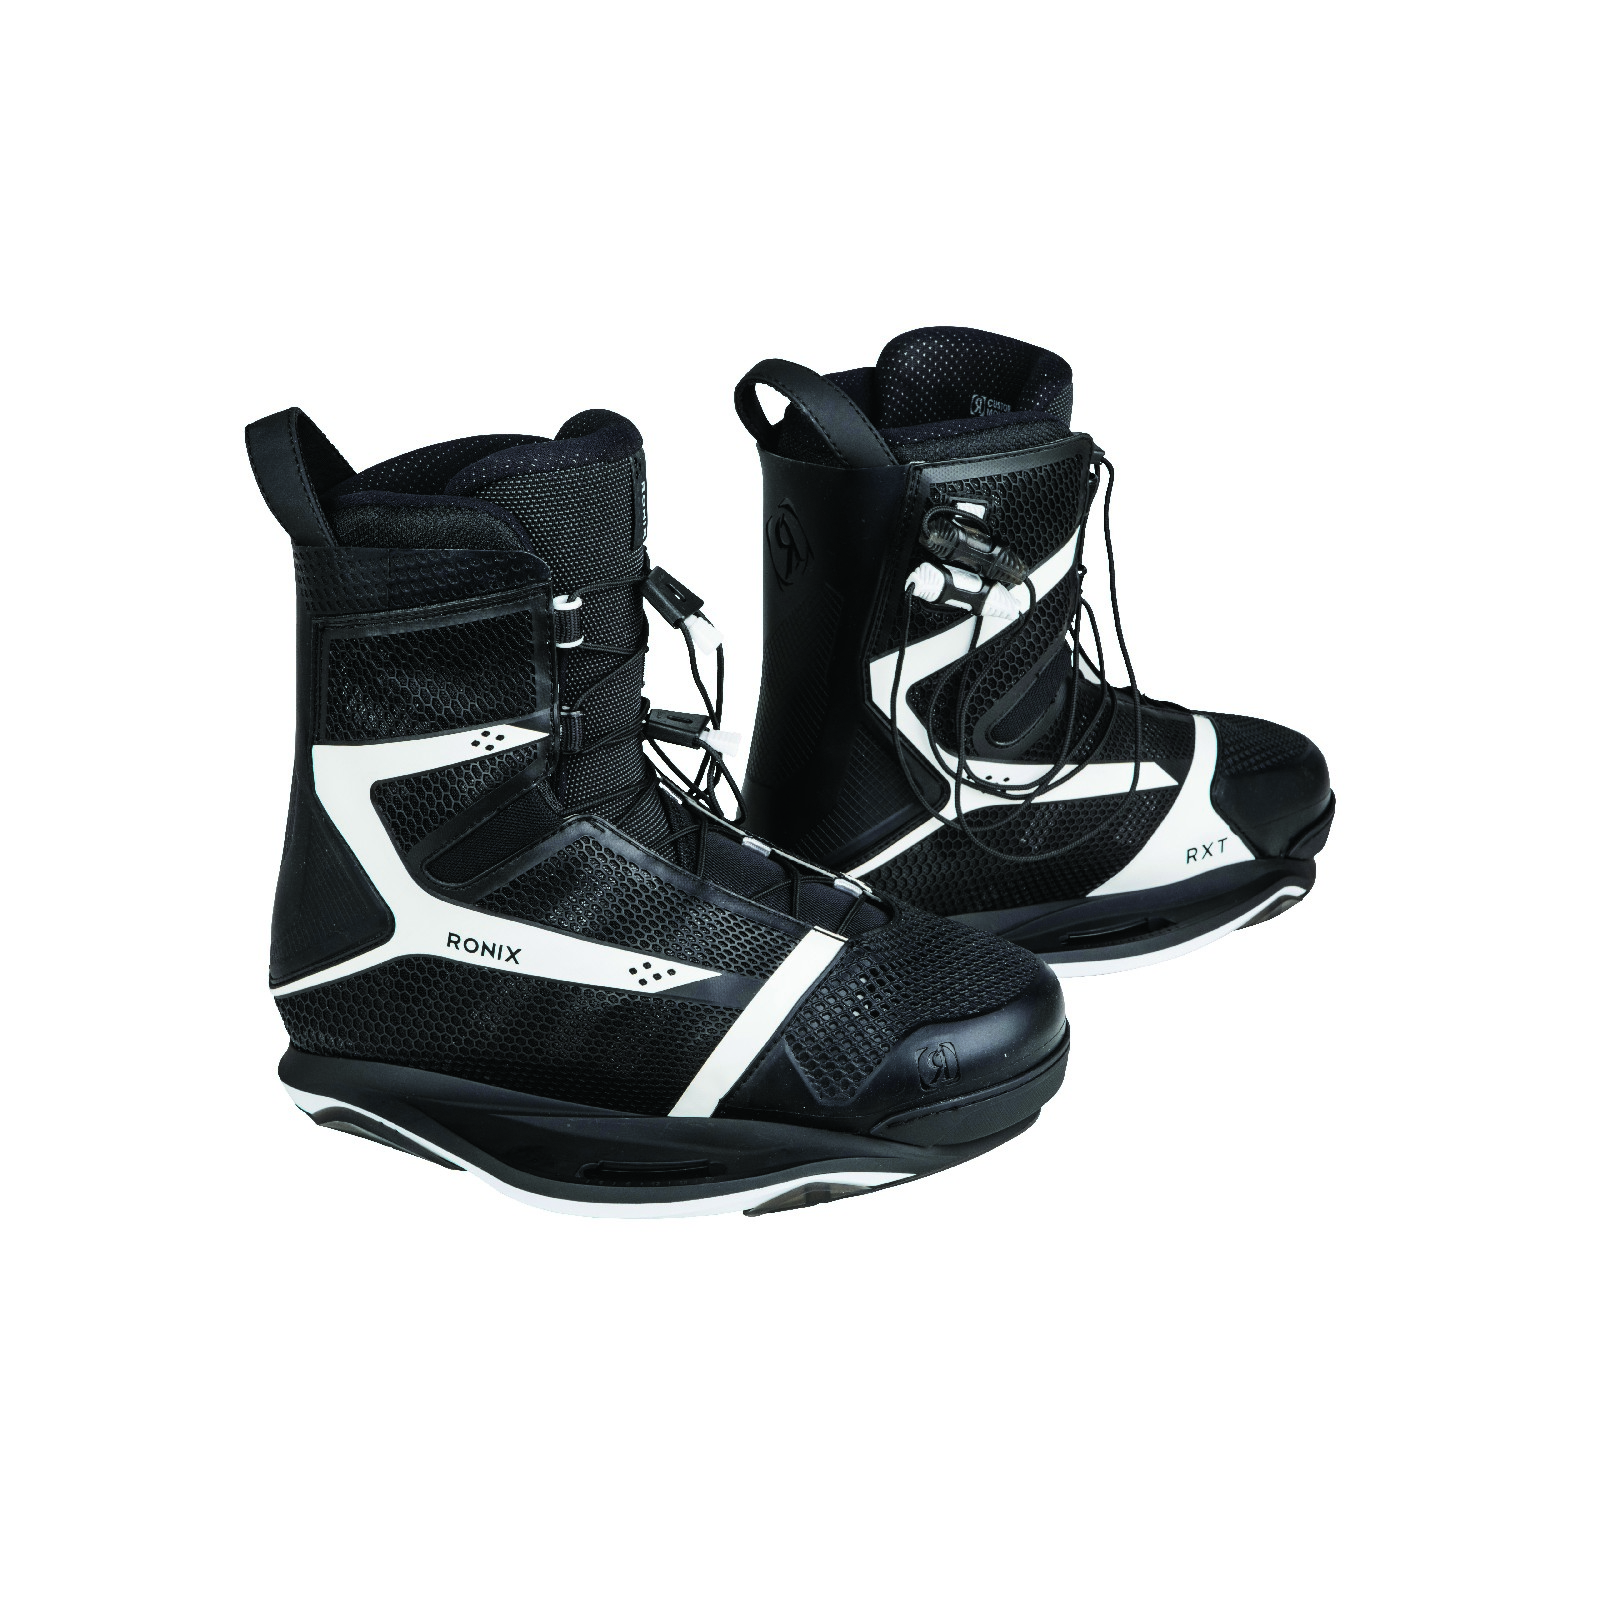 RXT INTUITION - NAKED BLACK BOOT RONIX 2019